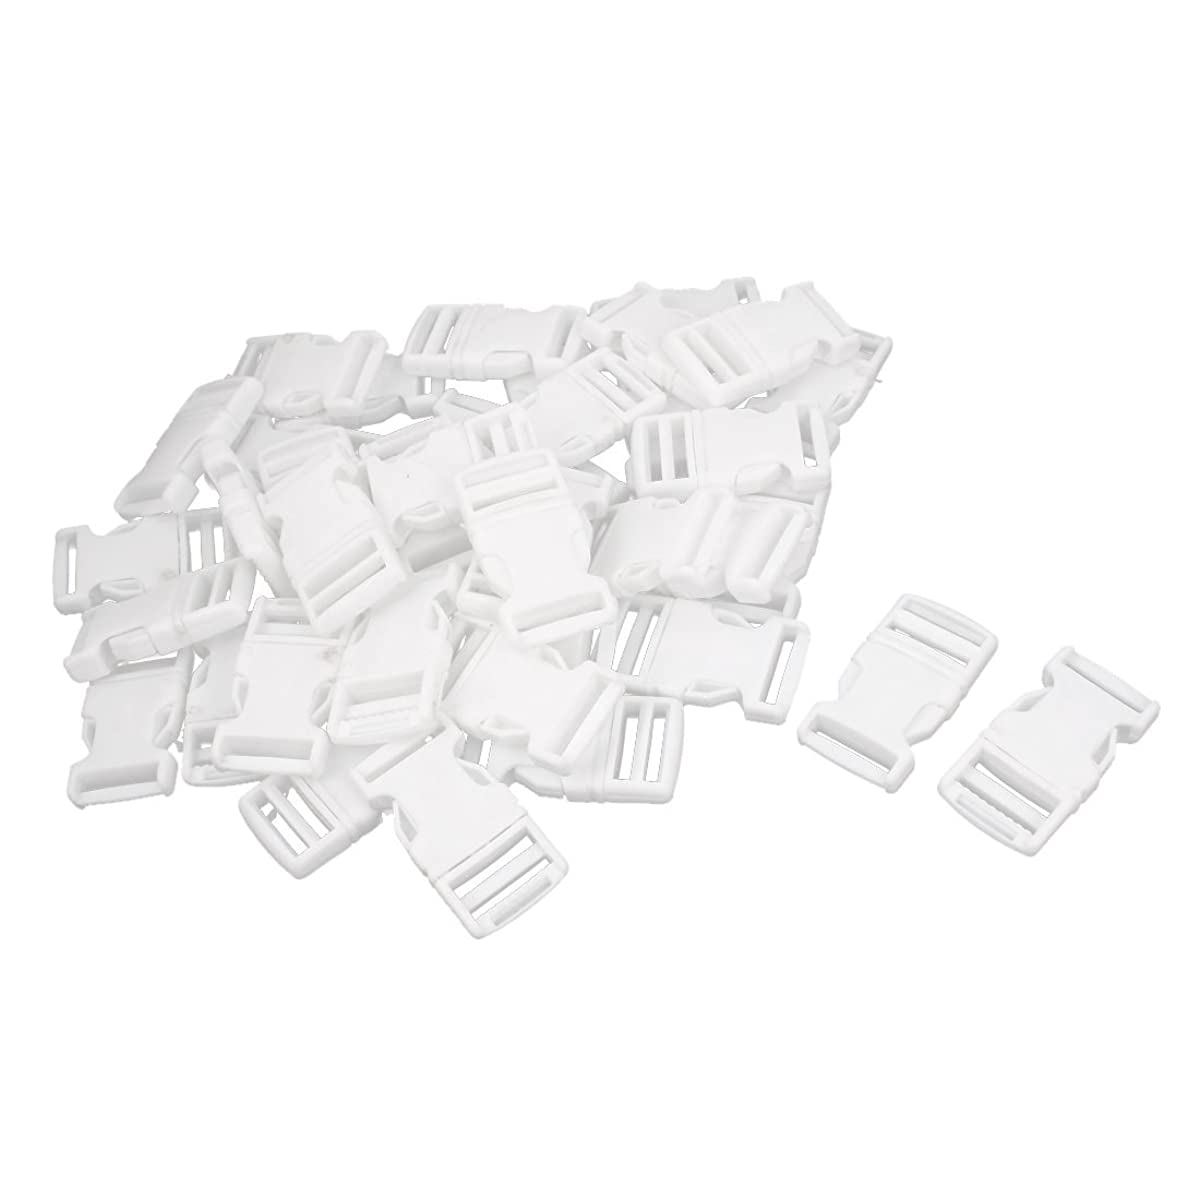 uxcell Luggage 2.5cm Width Strap White Hard Plastic Side Release Buckle 40PCS